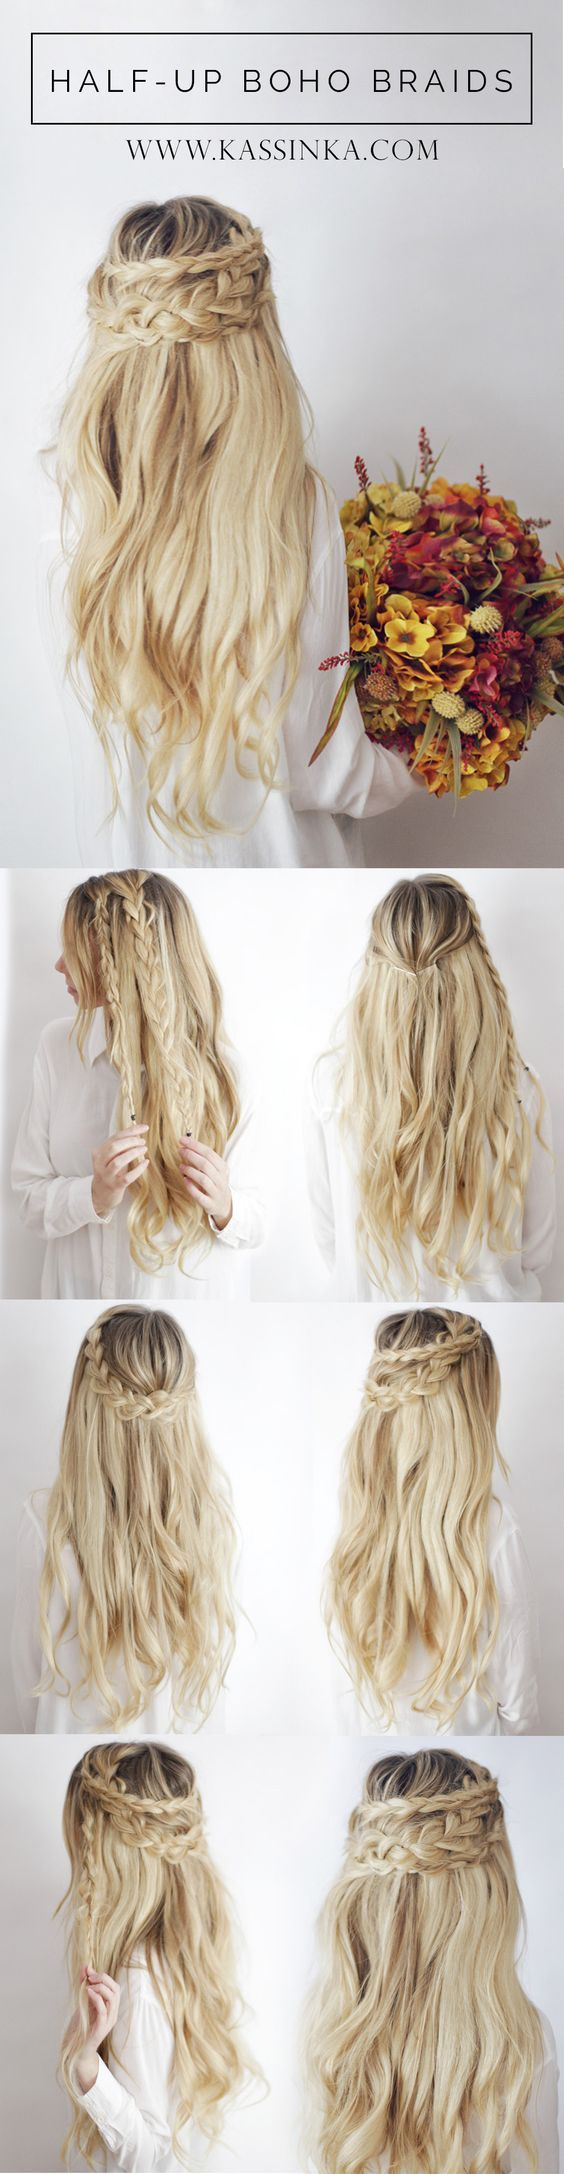 best images about hairstyles for mili school on pinterest